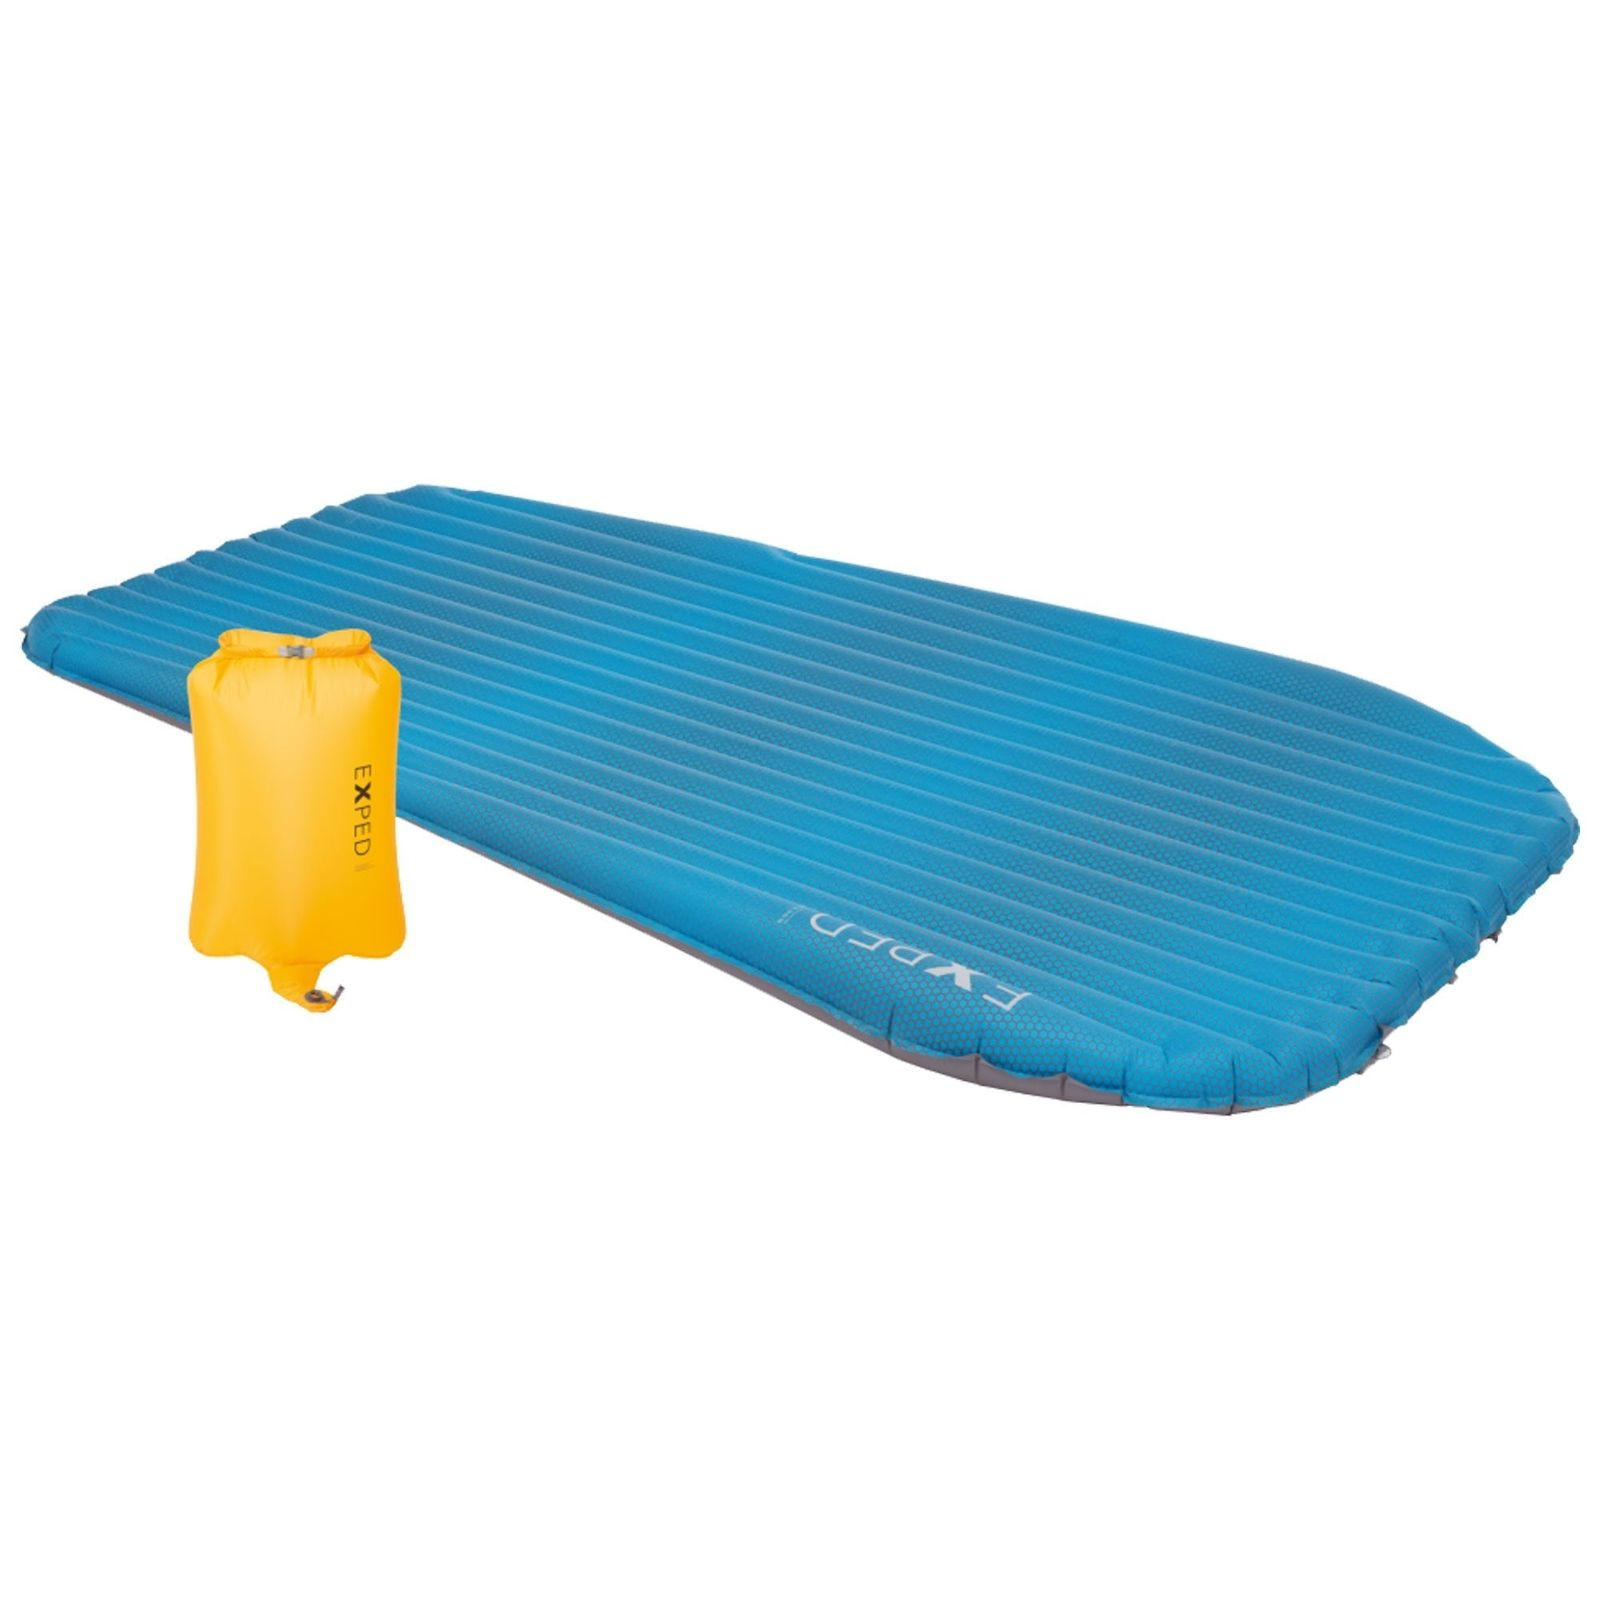 Exped AirMat HL Duo with Schnozzel Pumpbag Sleeping Mat - Blau